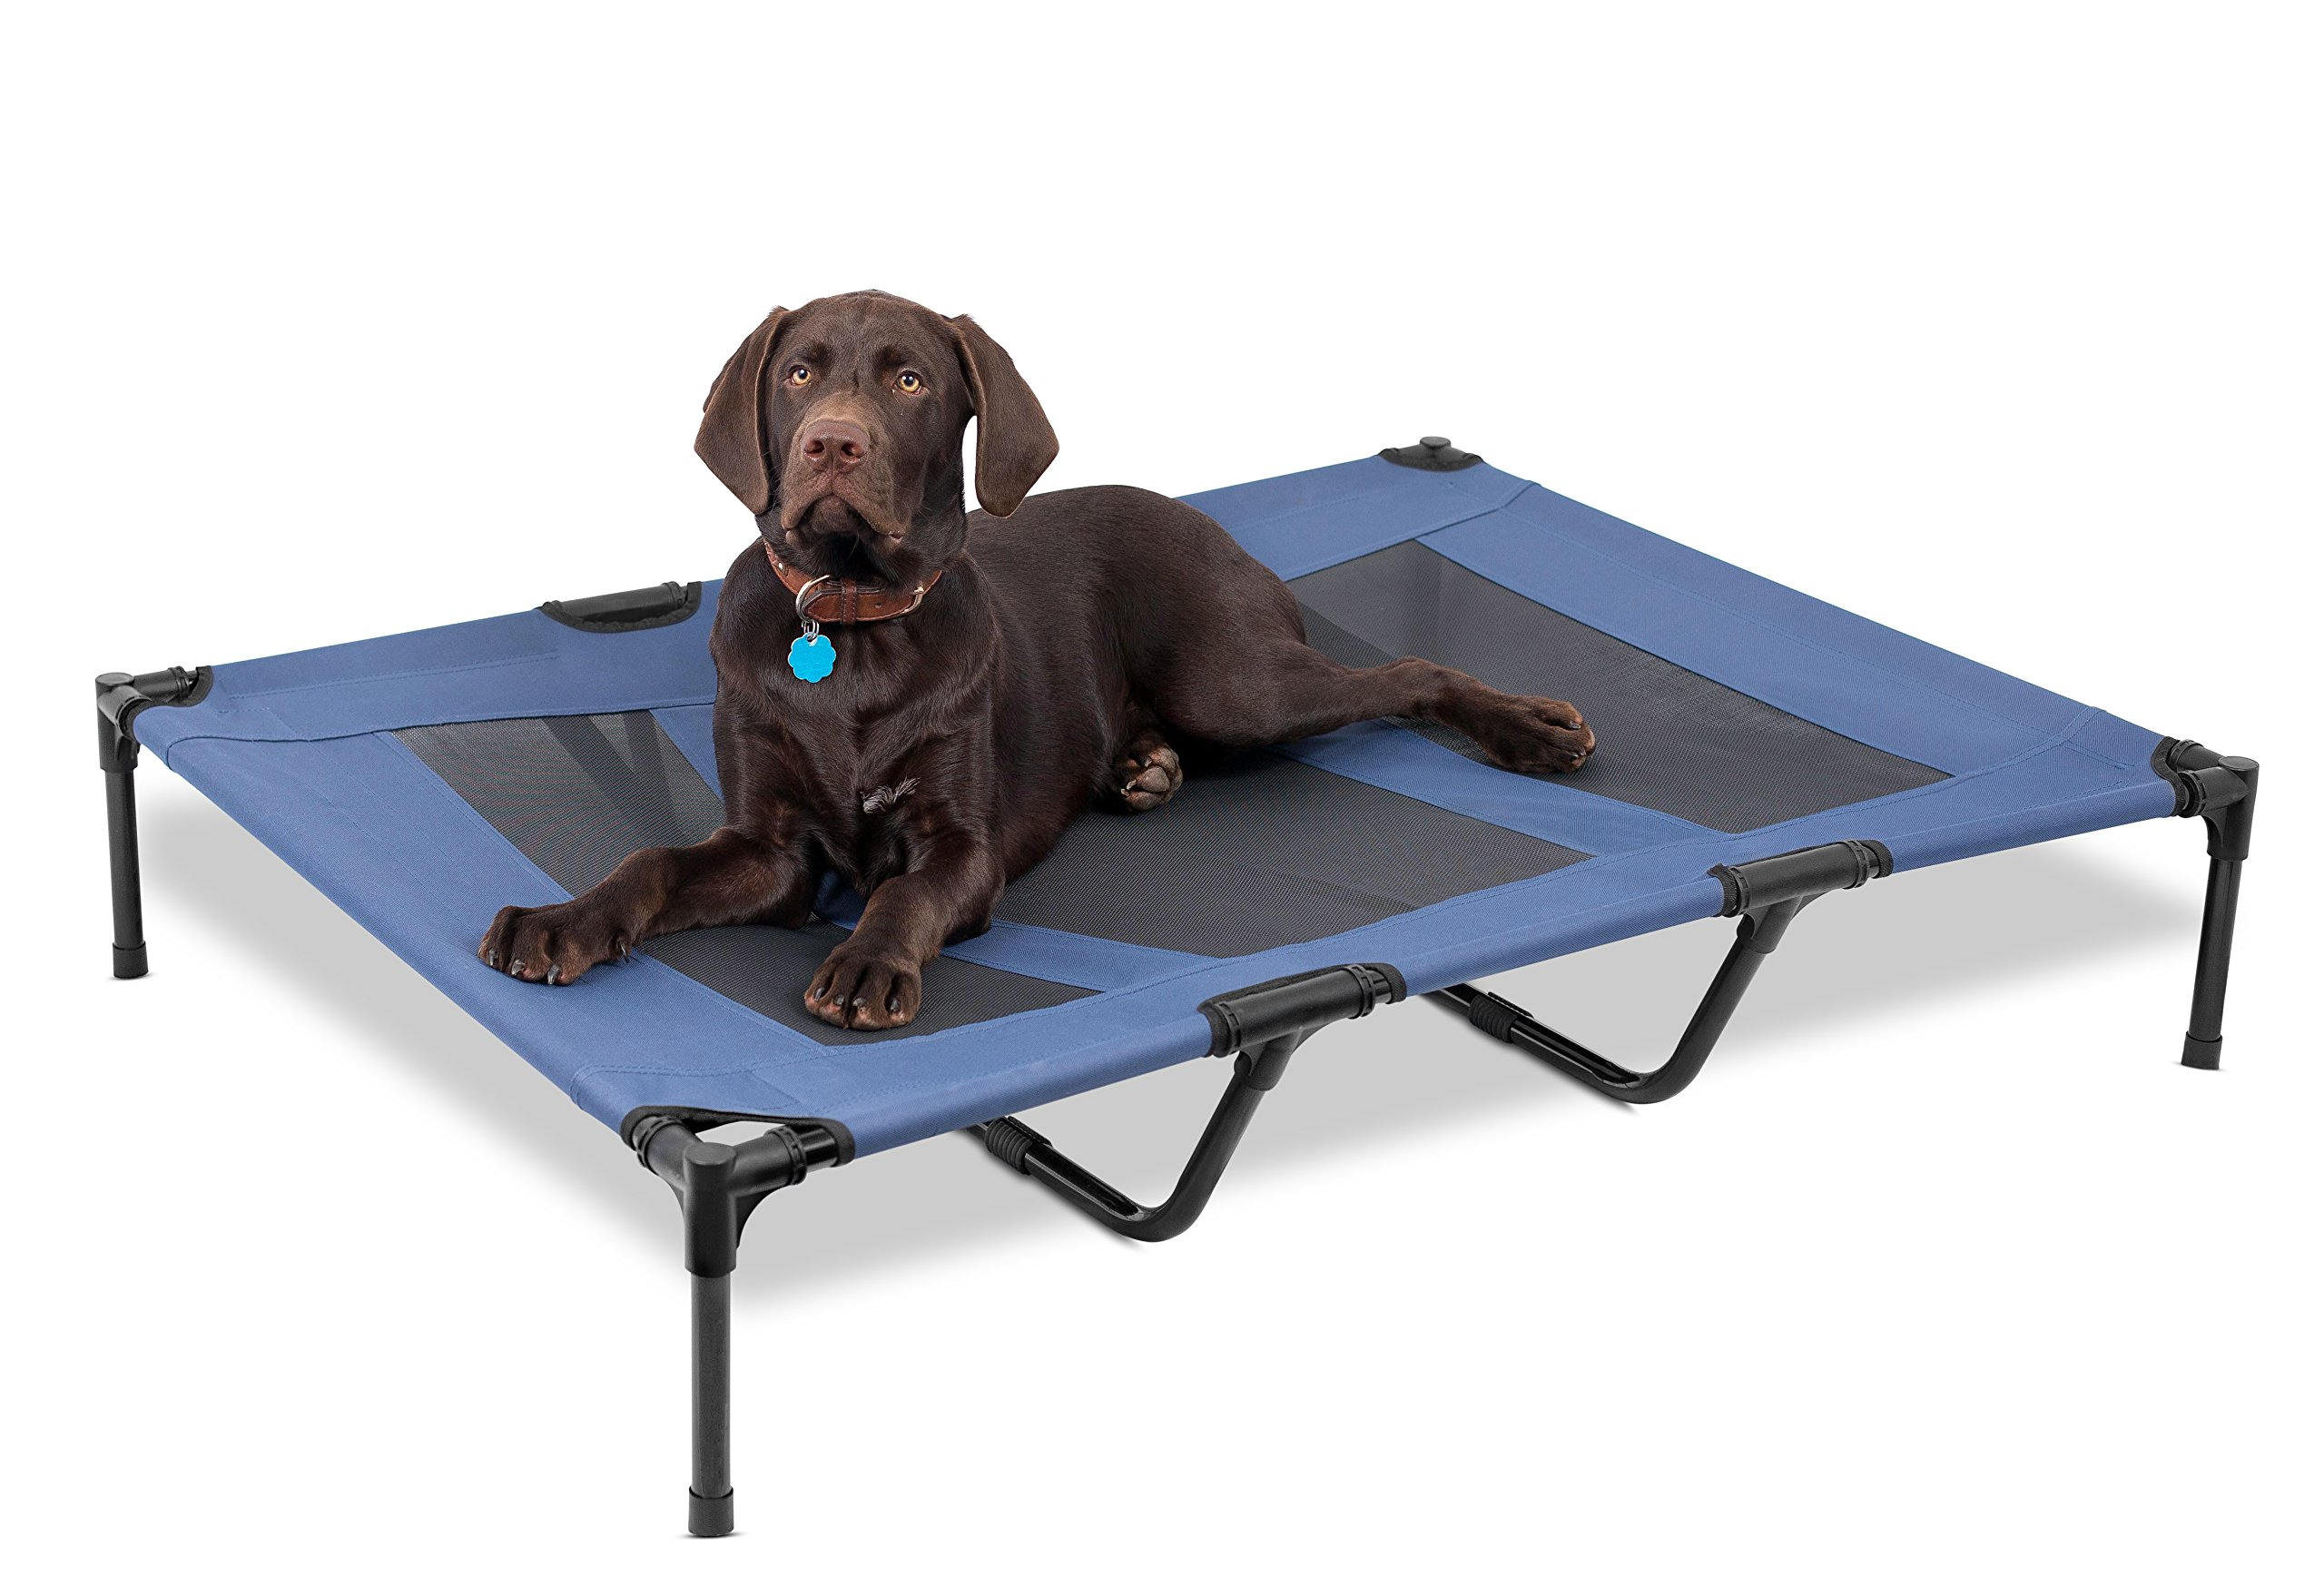 Internet's Best Dog Cot | 48 x 36 | Elevated Dog Bed | Cool Breathable Mesh | Indoor or Outdoor Use | Large | Blue